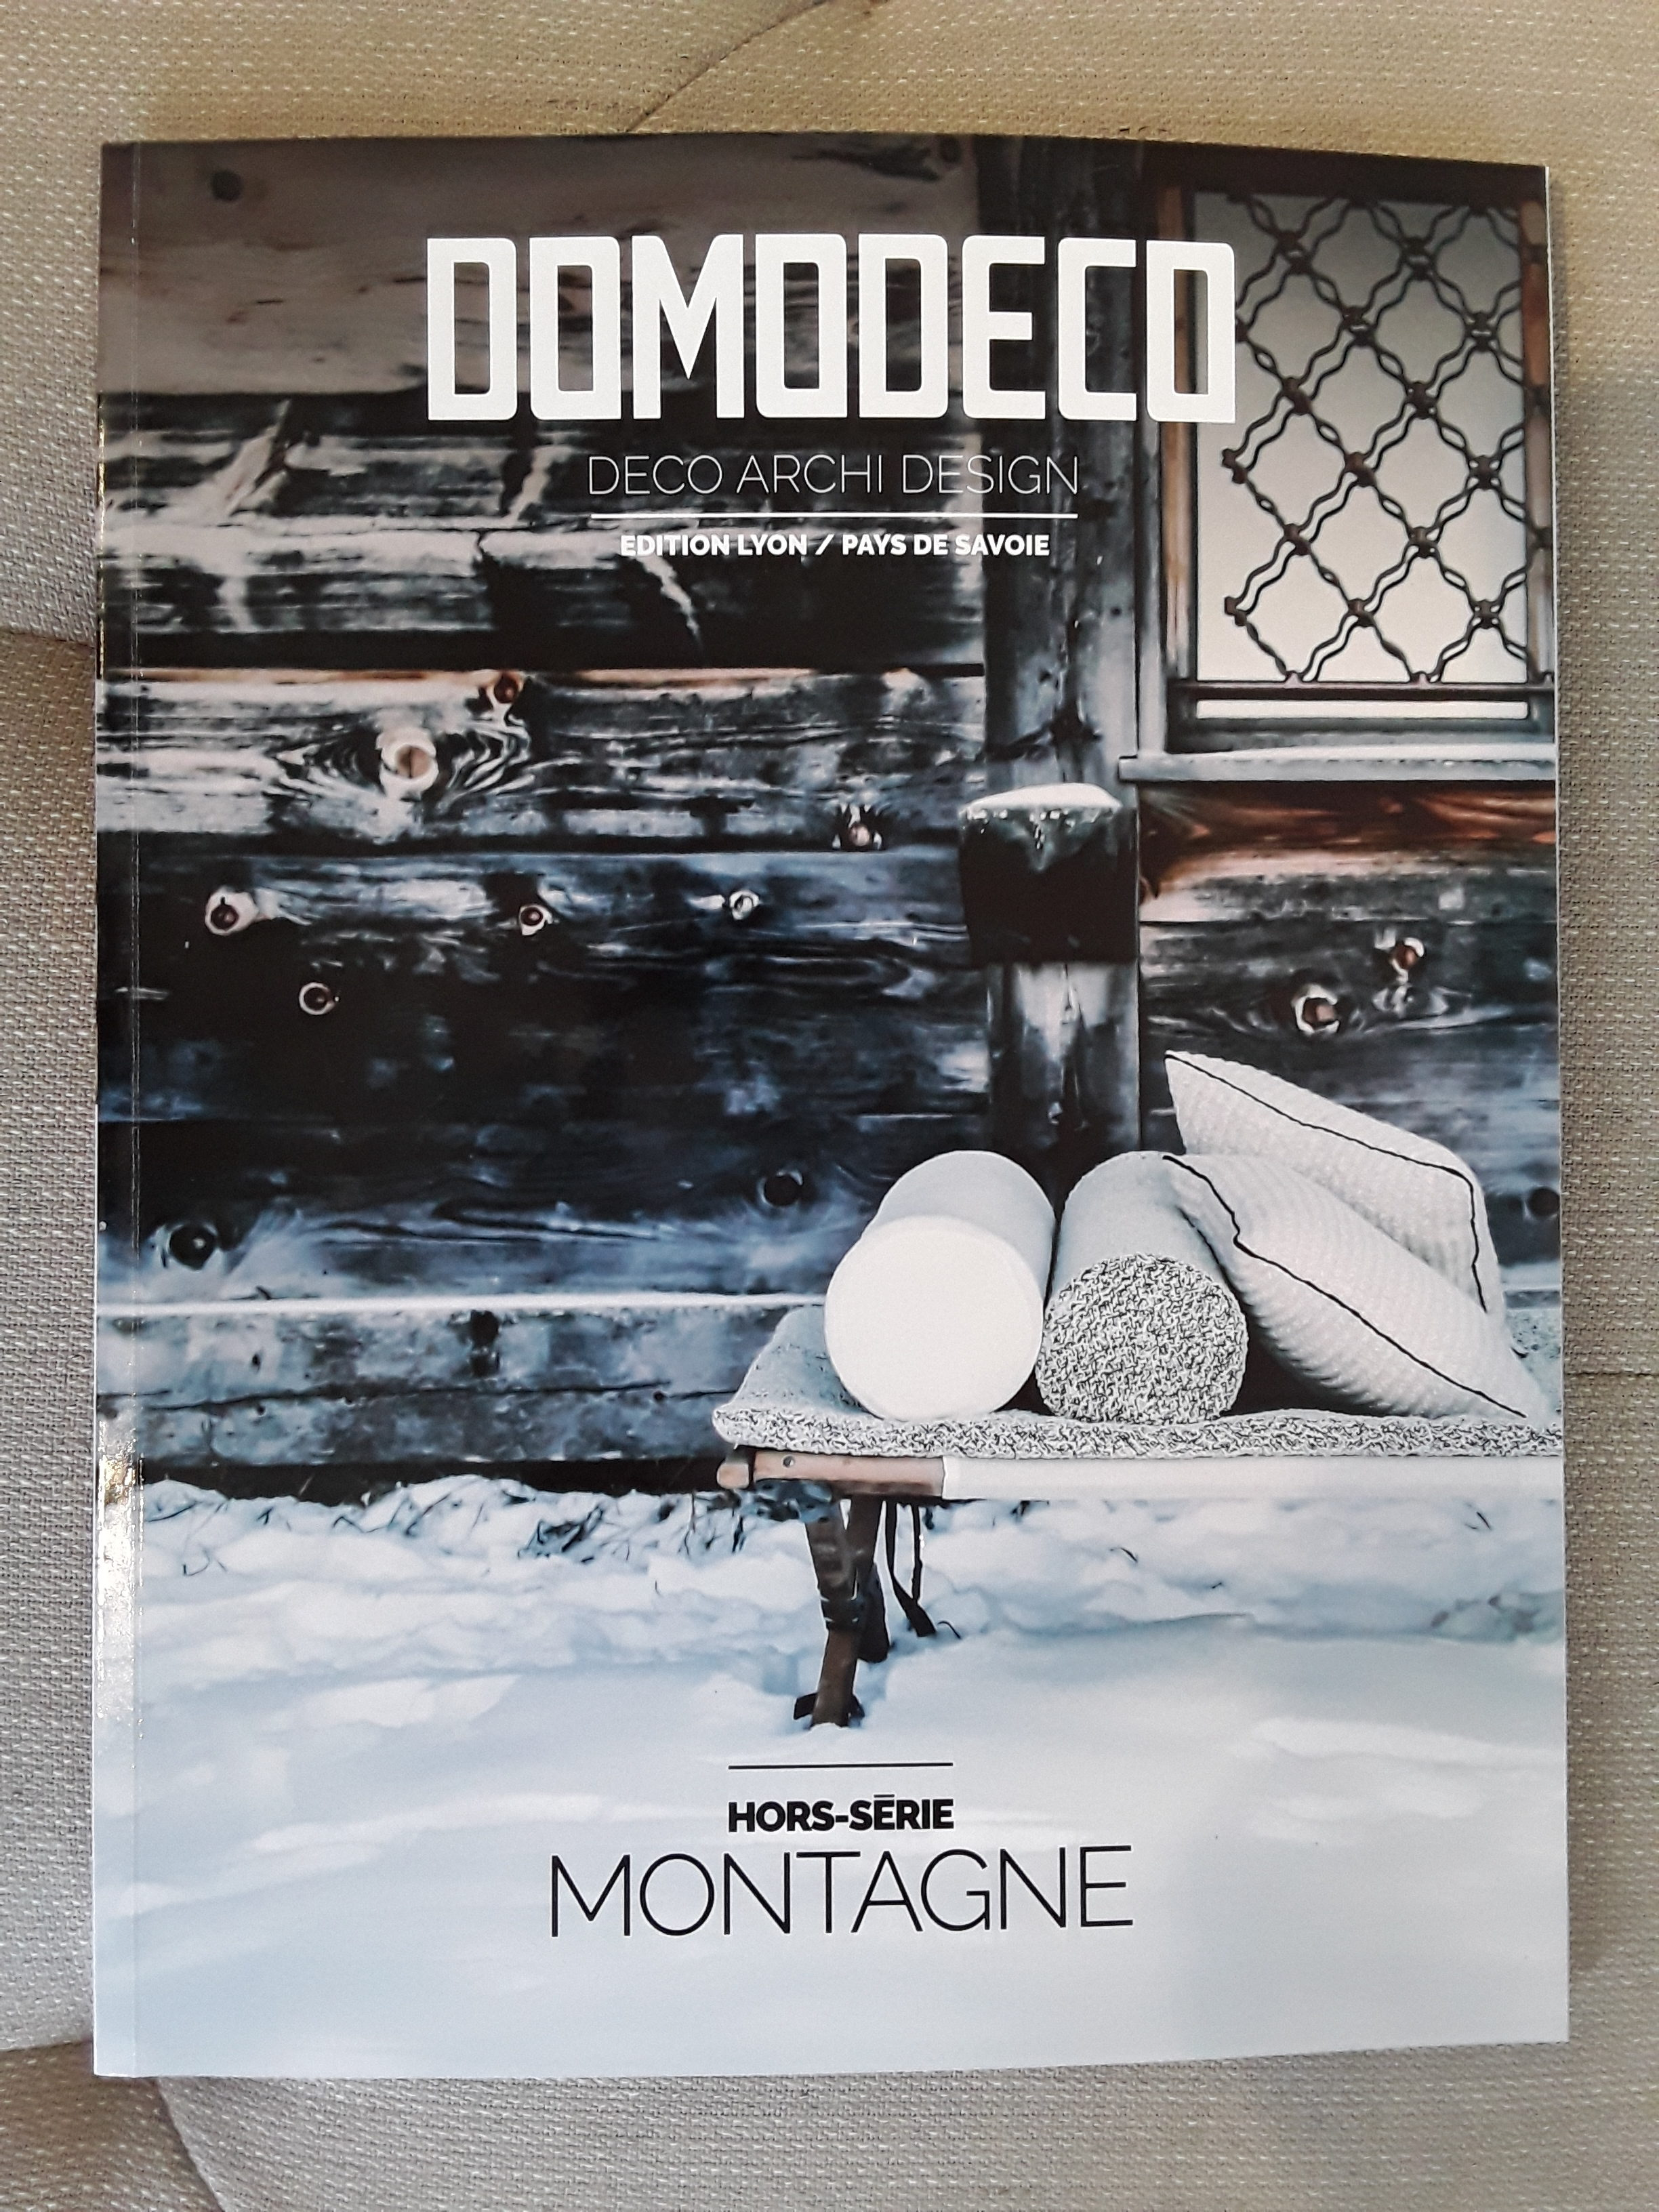 domodeco-hors-serie-montagne-2017